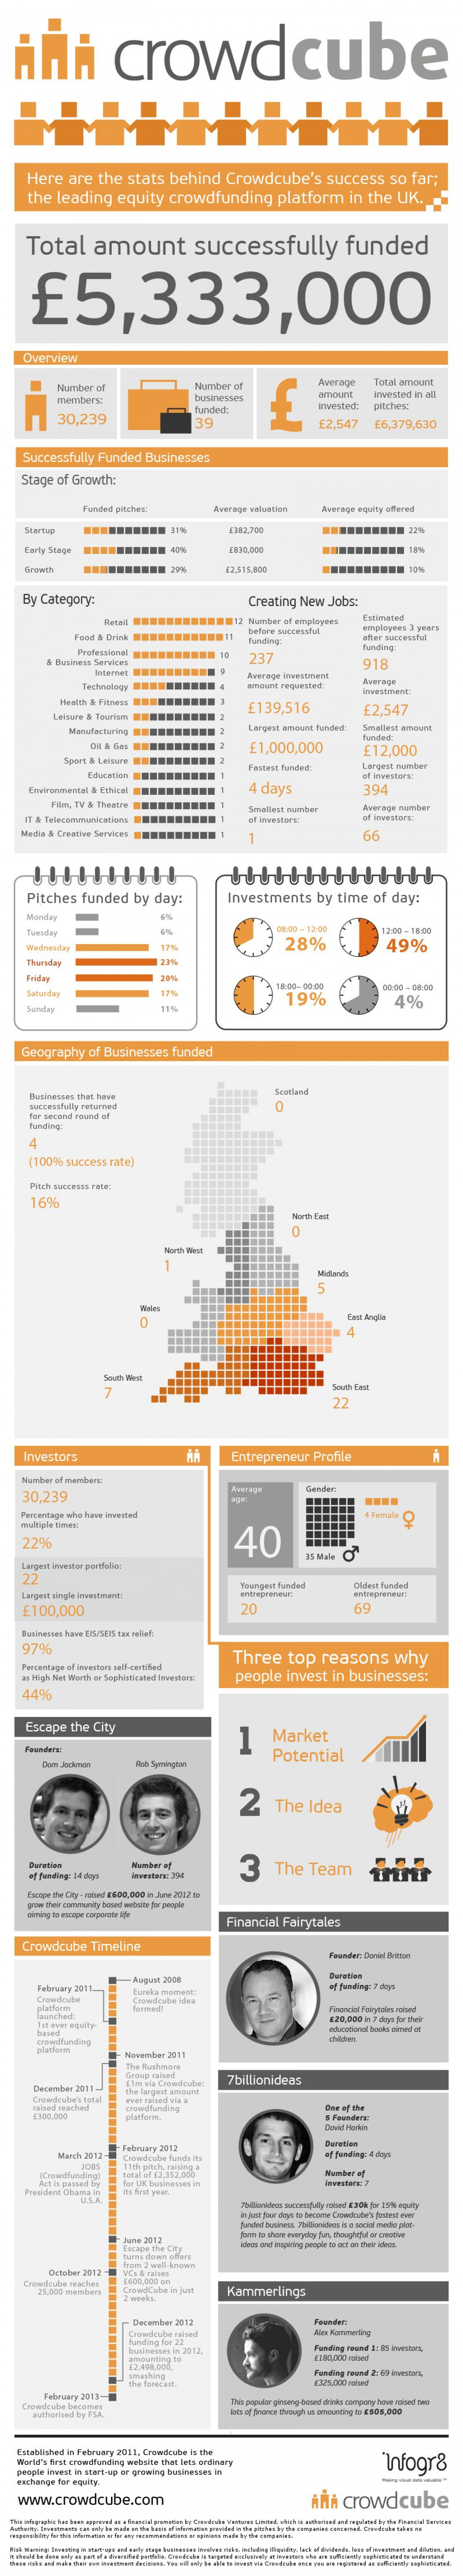 Crowdcube equity crowdfunding Infographic